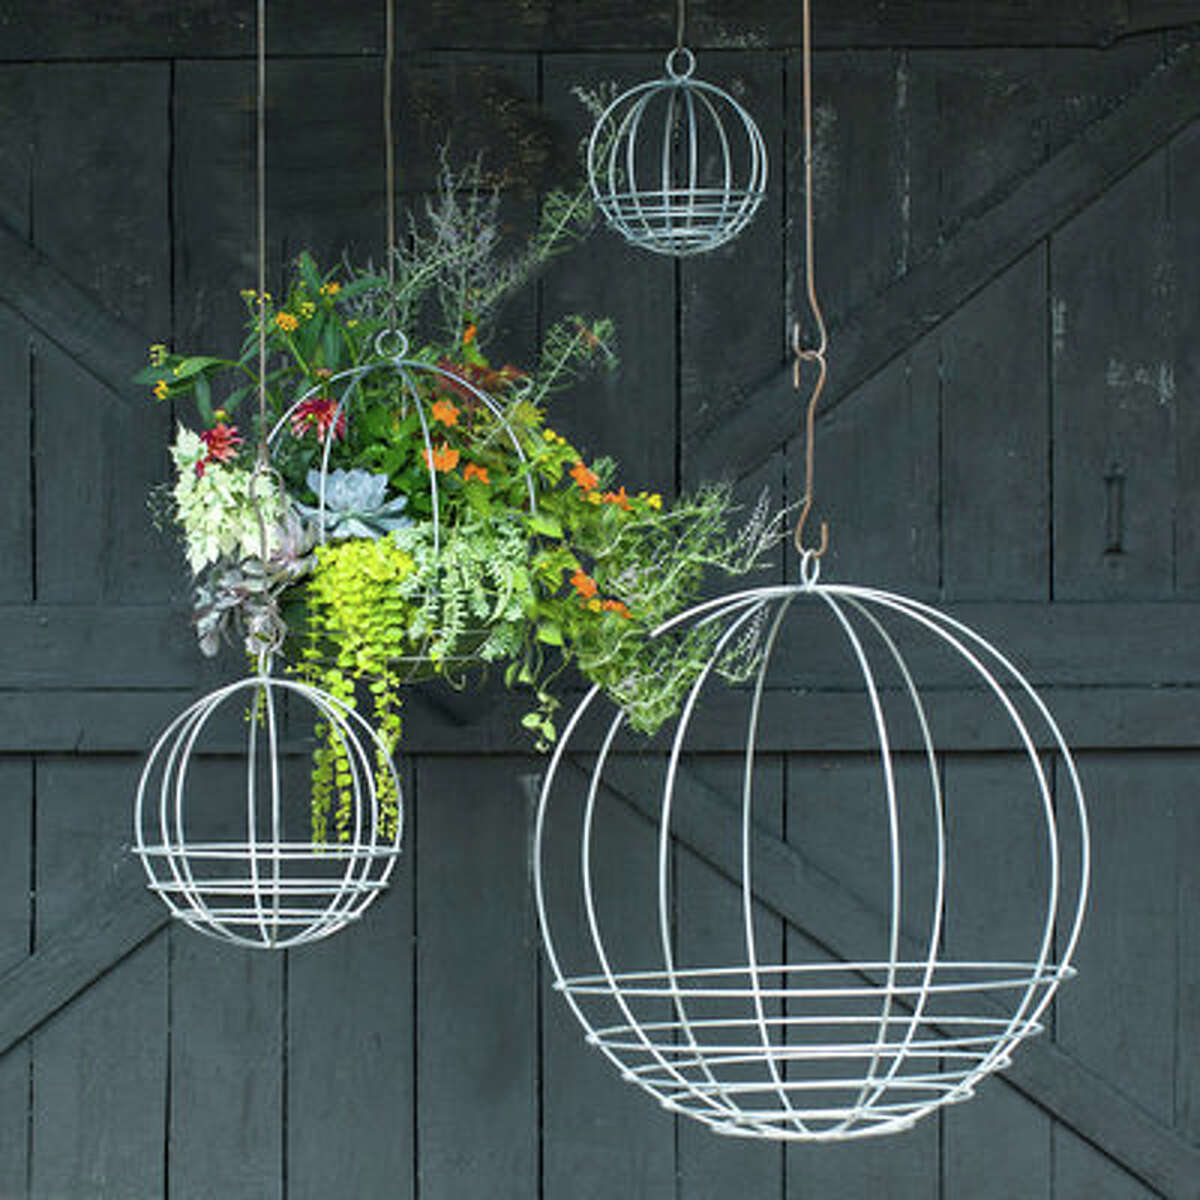 Hanging around the Yard Zinc Sphere Hanging Basket, available in four sizes, from small to extra-large, from $38 Add whimsy to your outdoor spaces with artful hanging baskets. Made in California exclusively for Terrain, these dangling planters are the perfect vessel for your brightest and boldest springtime buds. Each basket can also be paired with Terrain's basket liners, which makes for easy planting.